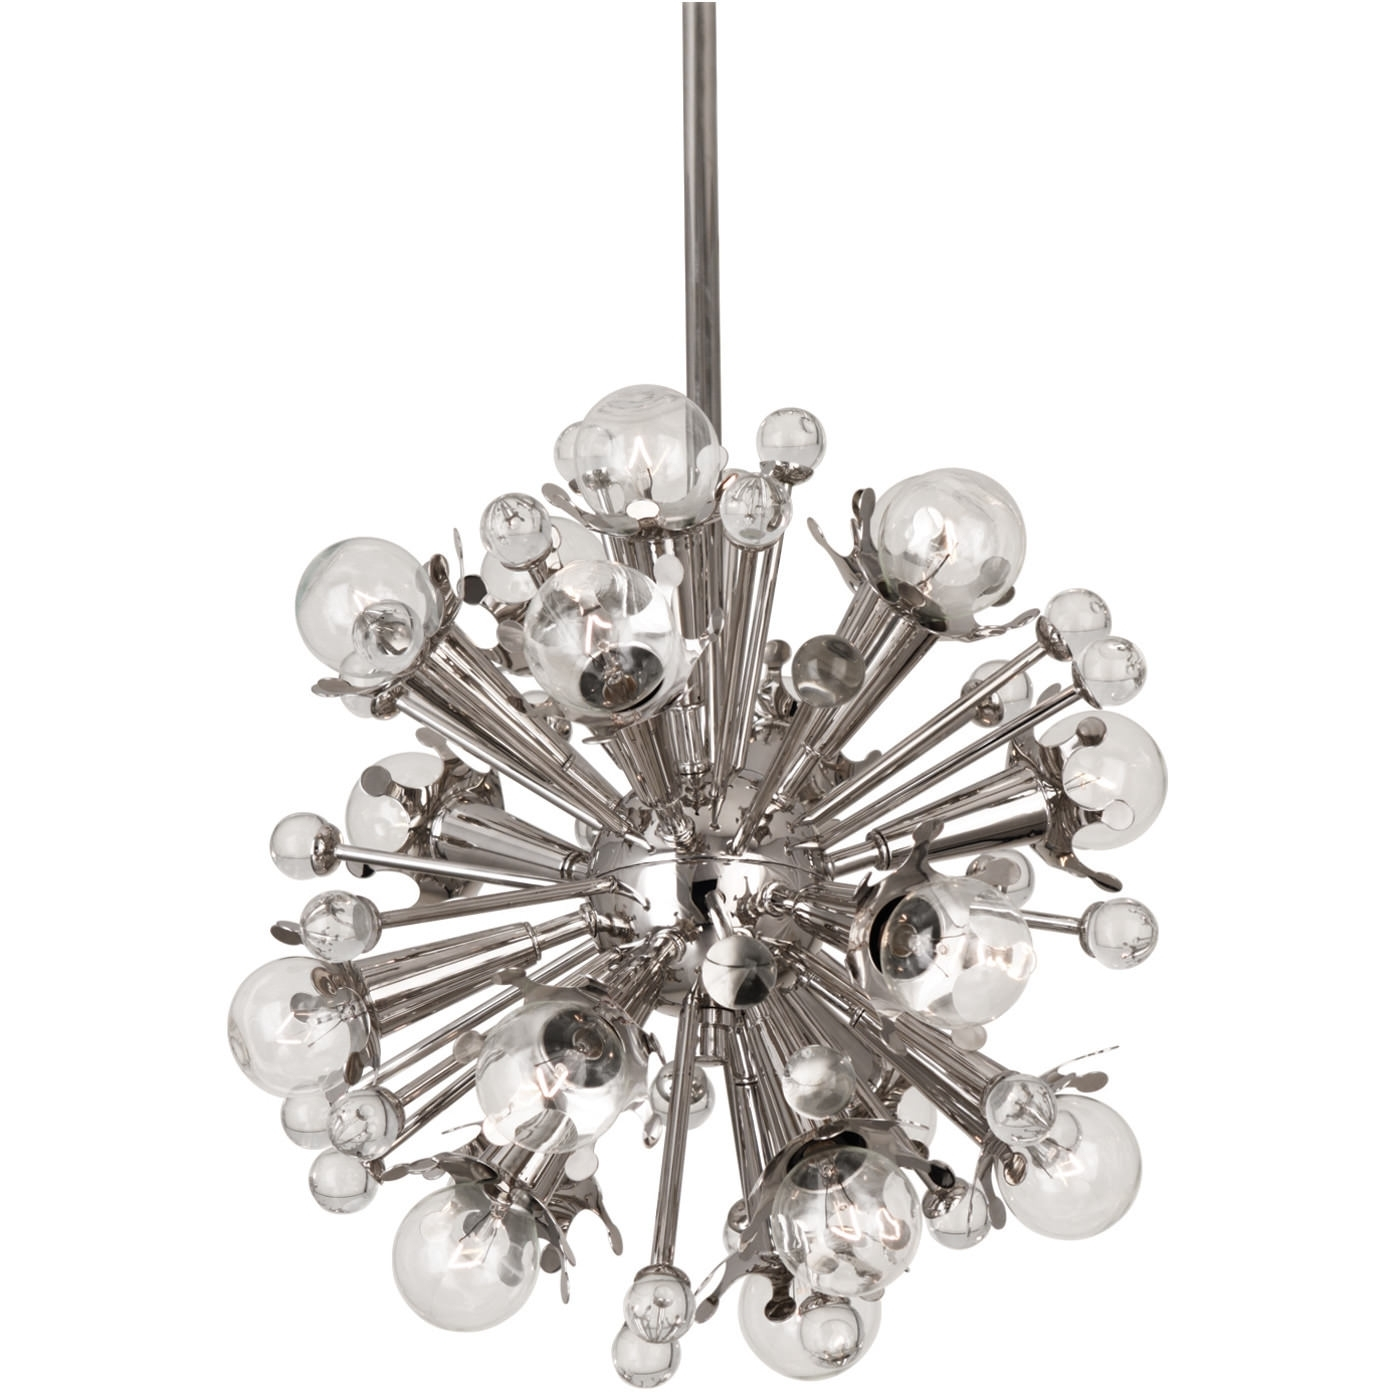 Jonathan Adler Within Favorite Mini Sputnik Chandeliers (View 9 of 20)